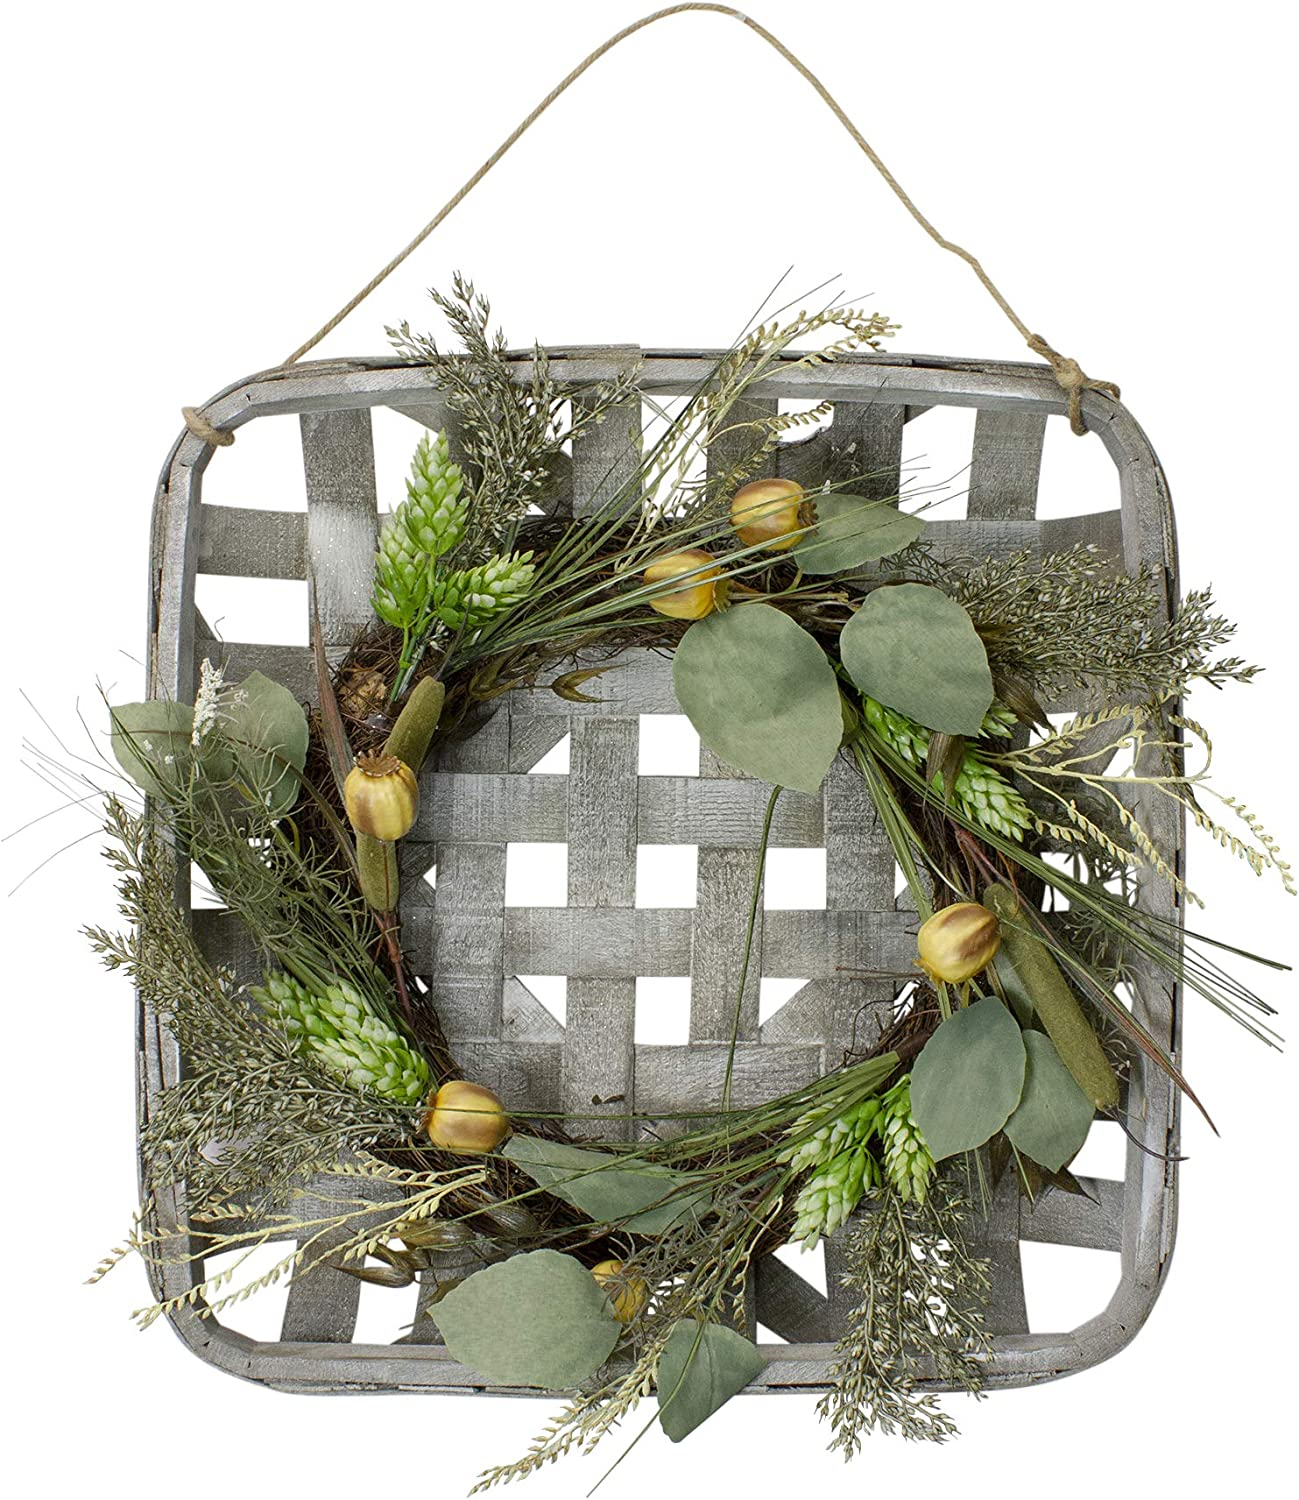 Northlight KJI28170 Wreath Direct Max 41% OFF store in Tray Hanger Green